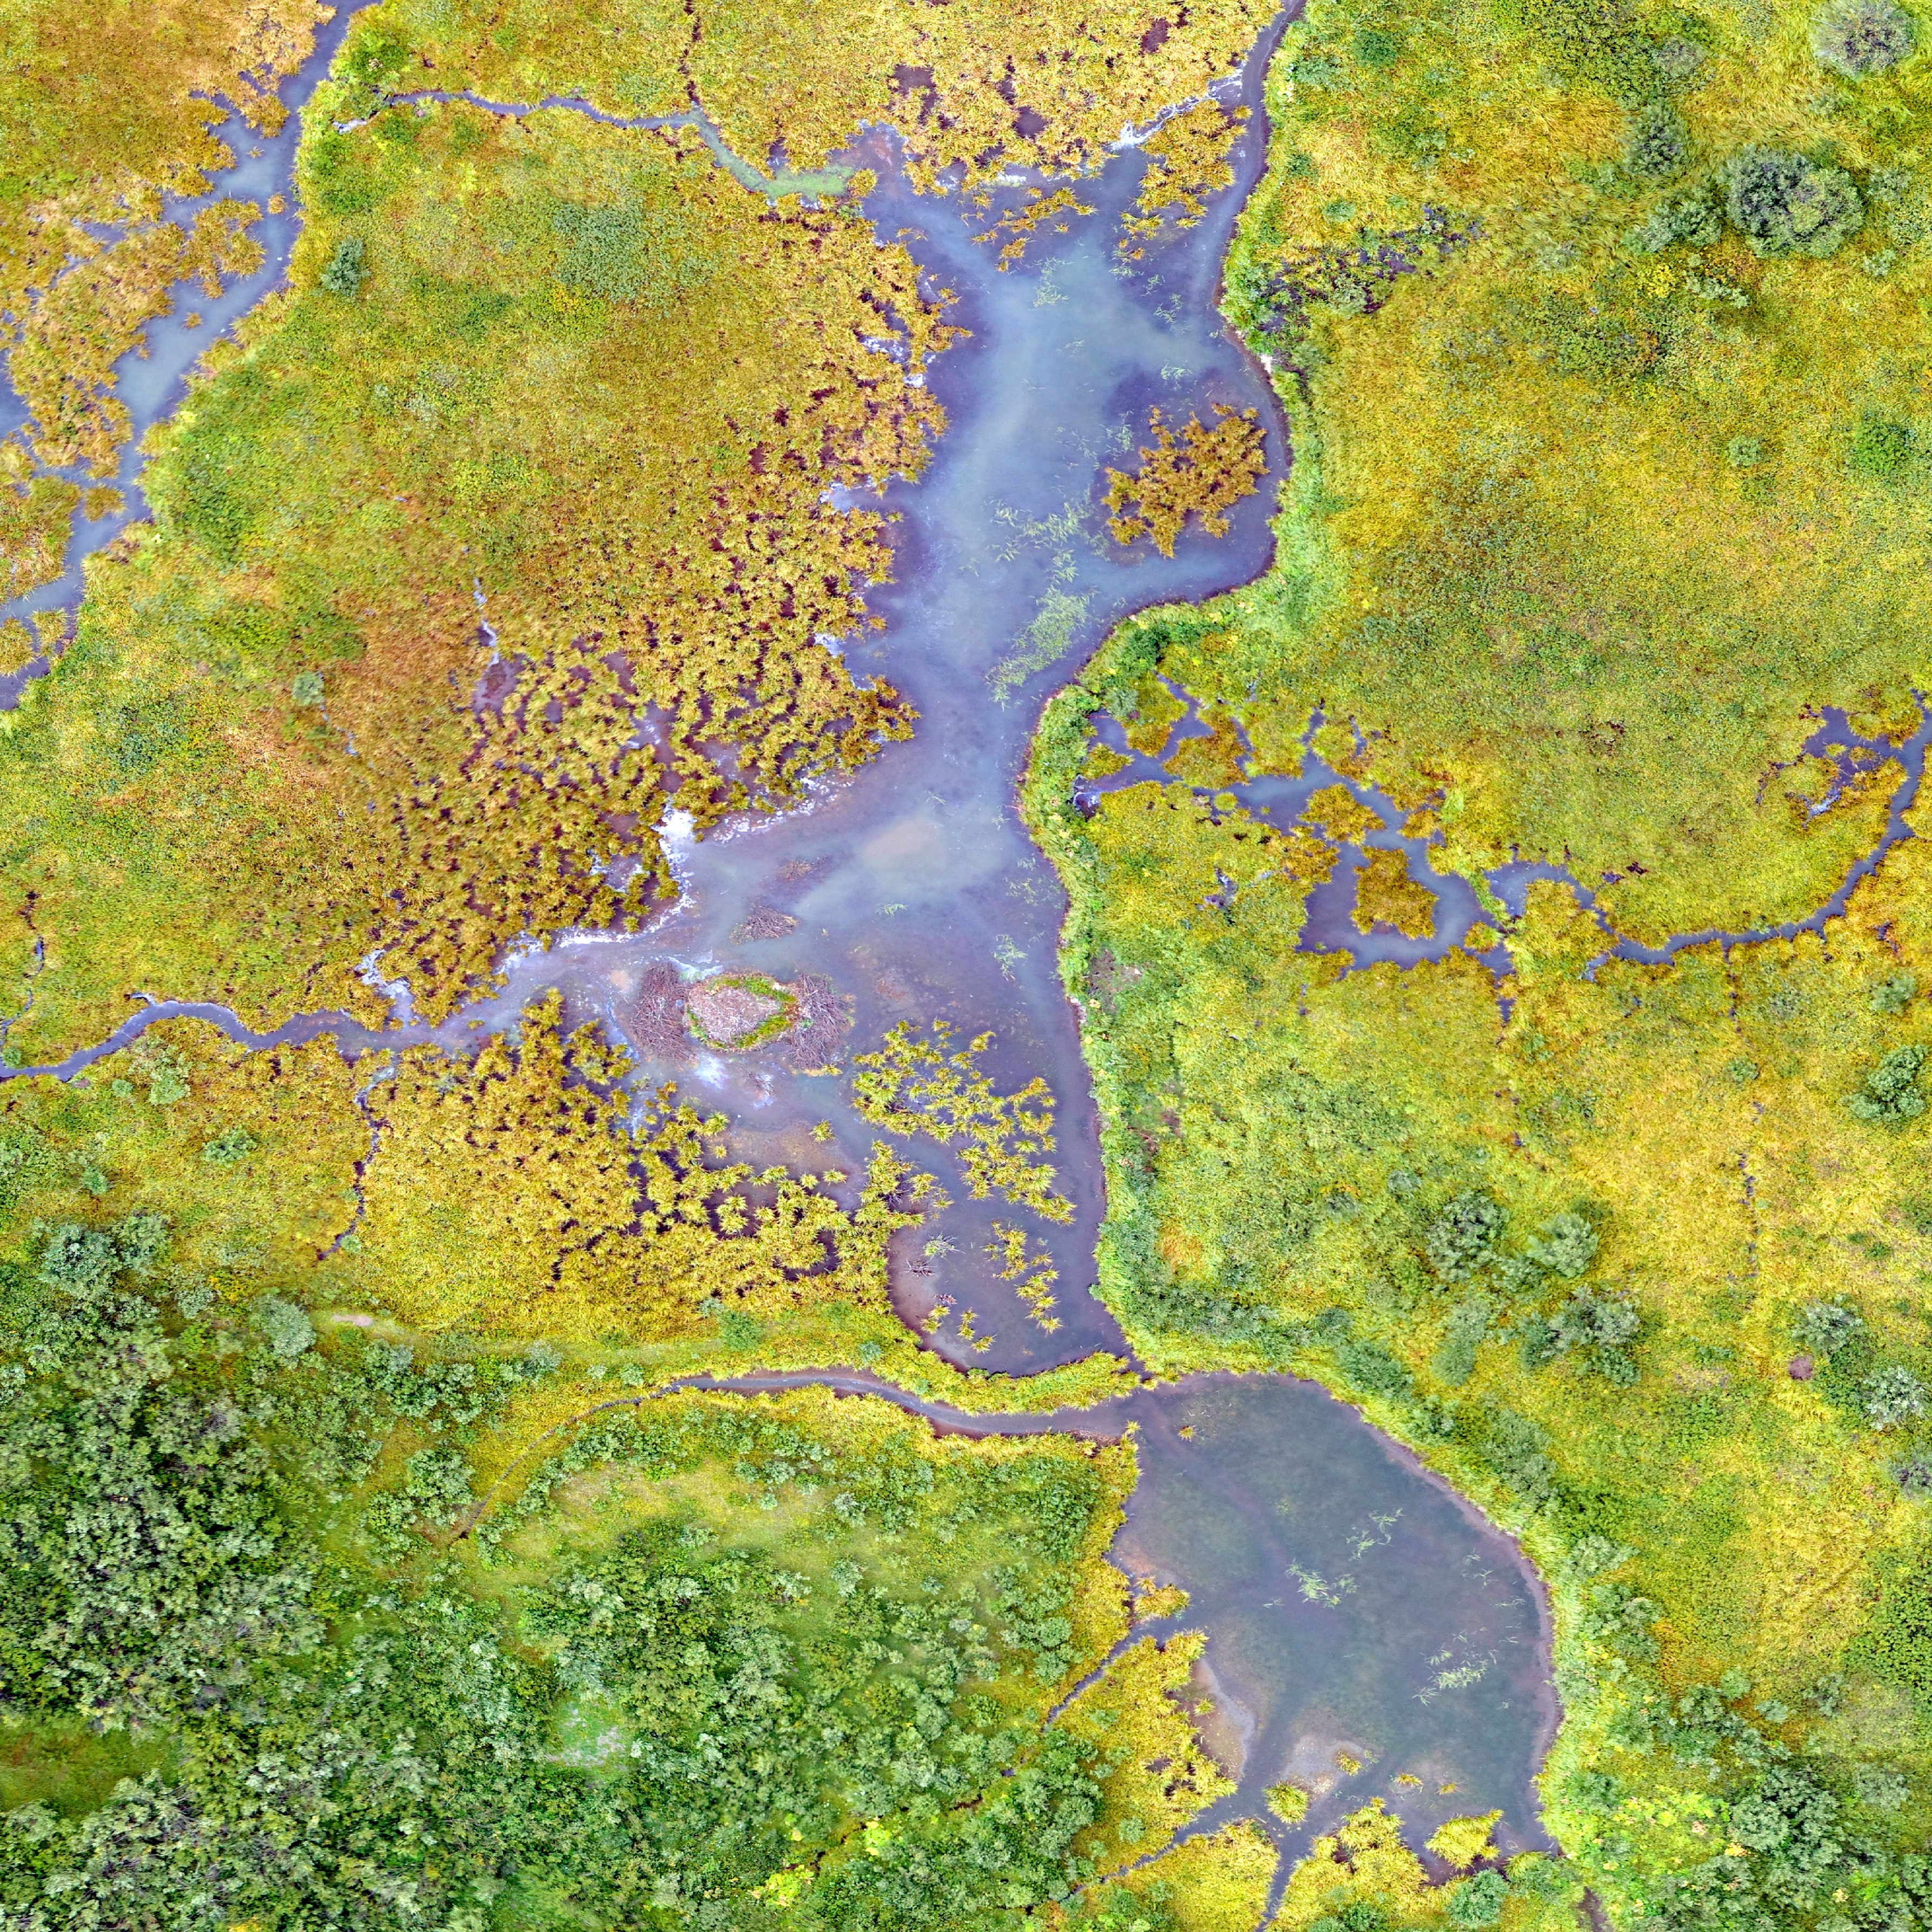 Wetlands have a unique beauty when viewed from above. This natural colour drone image shows the intricate interactions of forest and surface water in this high-altitude wetland called a fen in the Rocky Mountains of Colorado. Wetlands enhance water quality and provide habitats for diverse plant and animal species. Drones help with mapping fens for conservation and restoration studies.